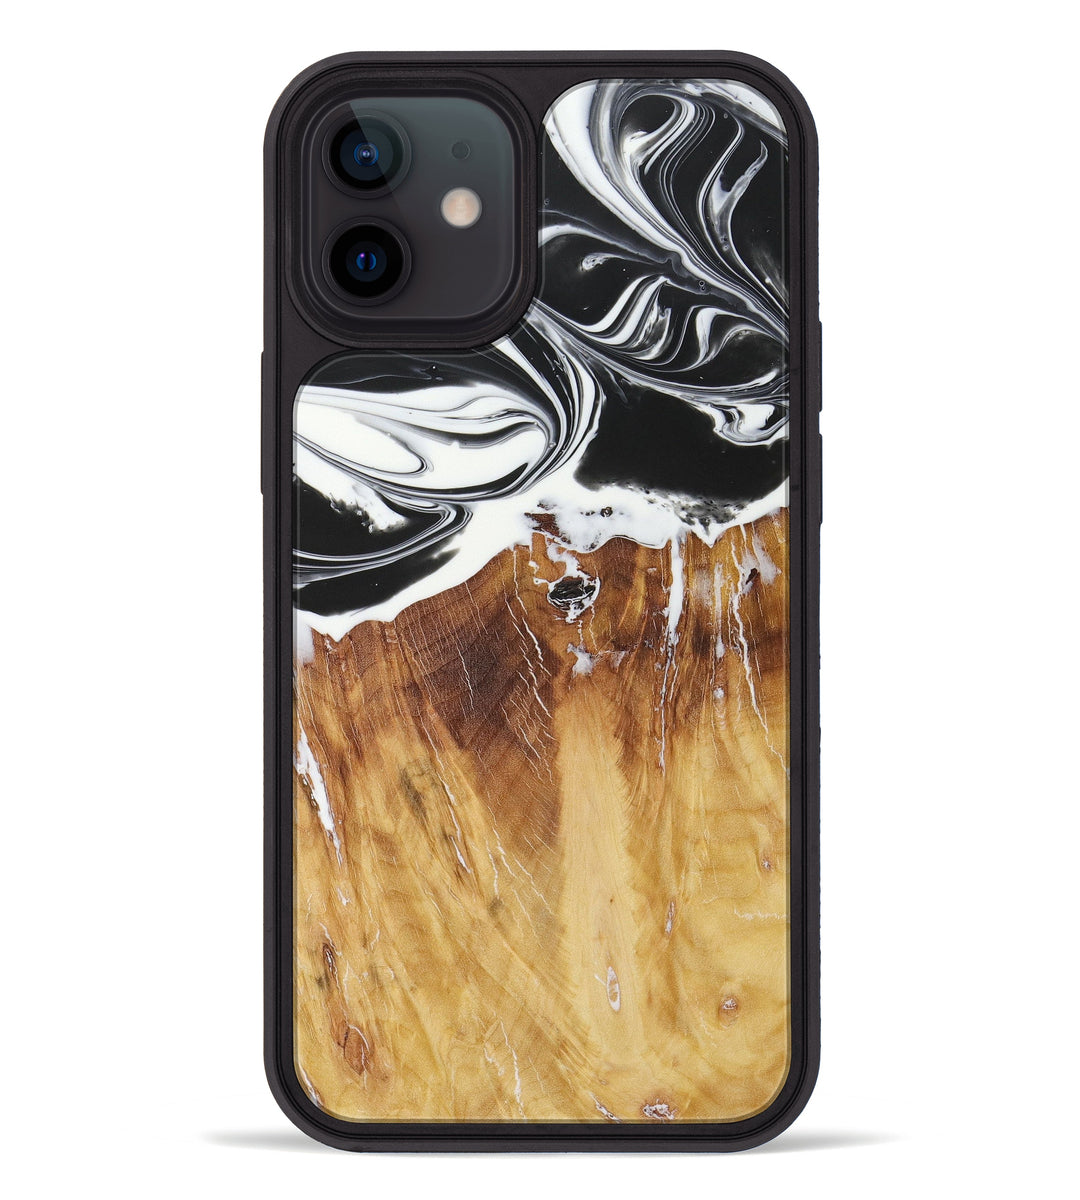 iPhone 12 Wood+Resin Phone Case - Lorianne (Black & White, 427802)